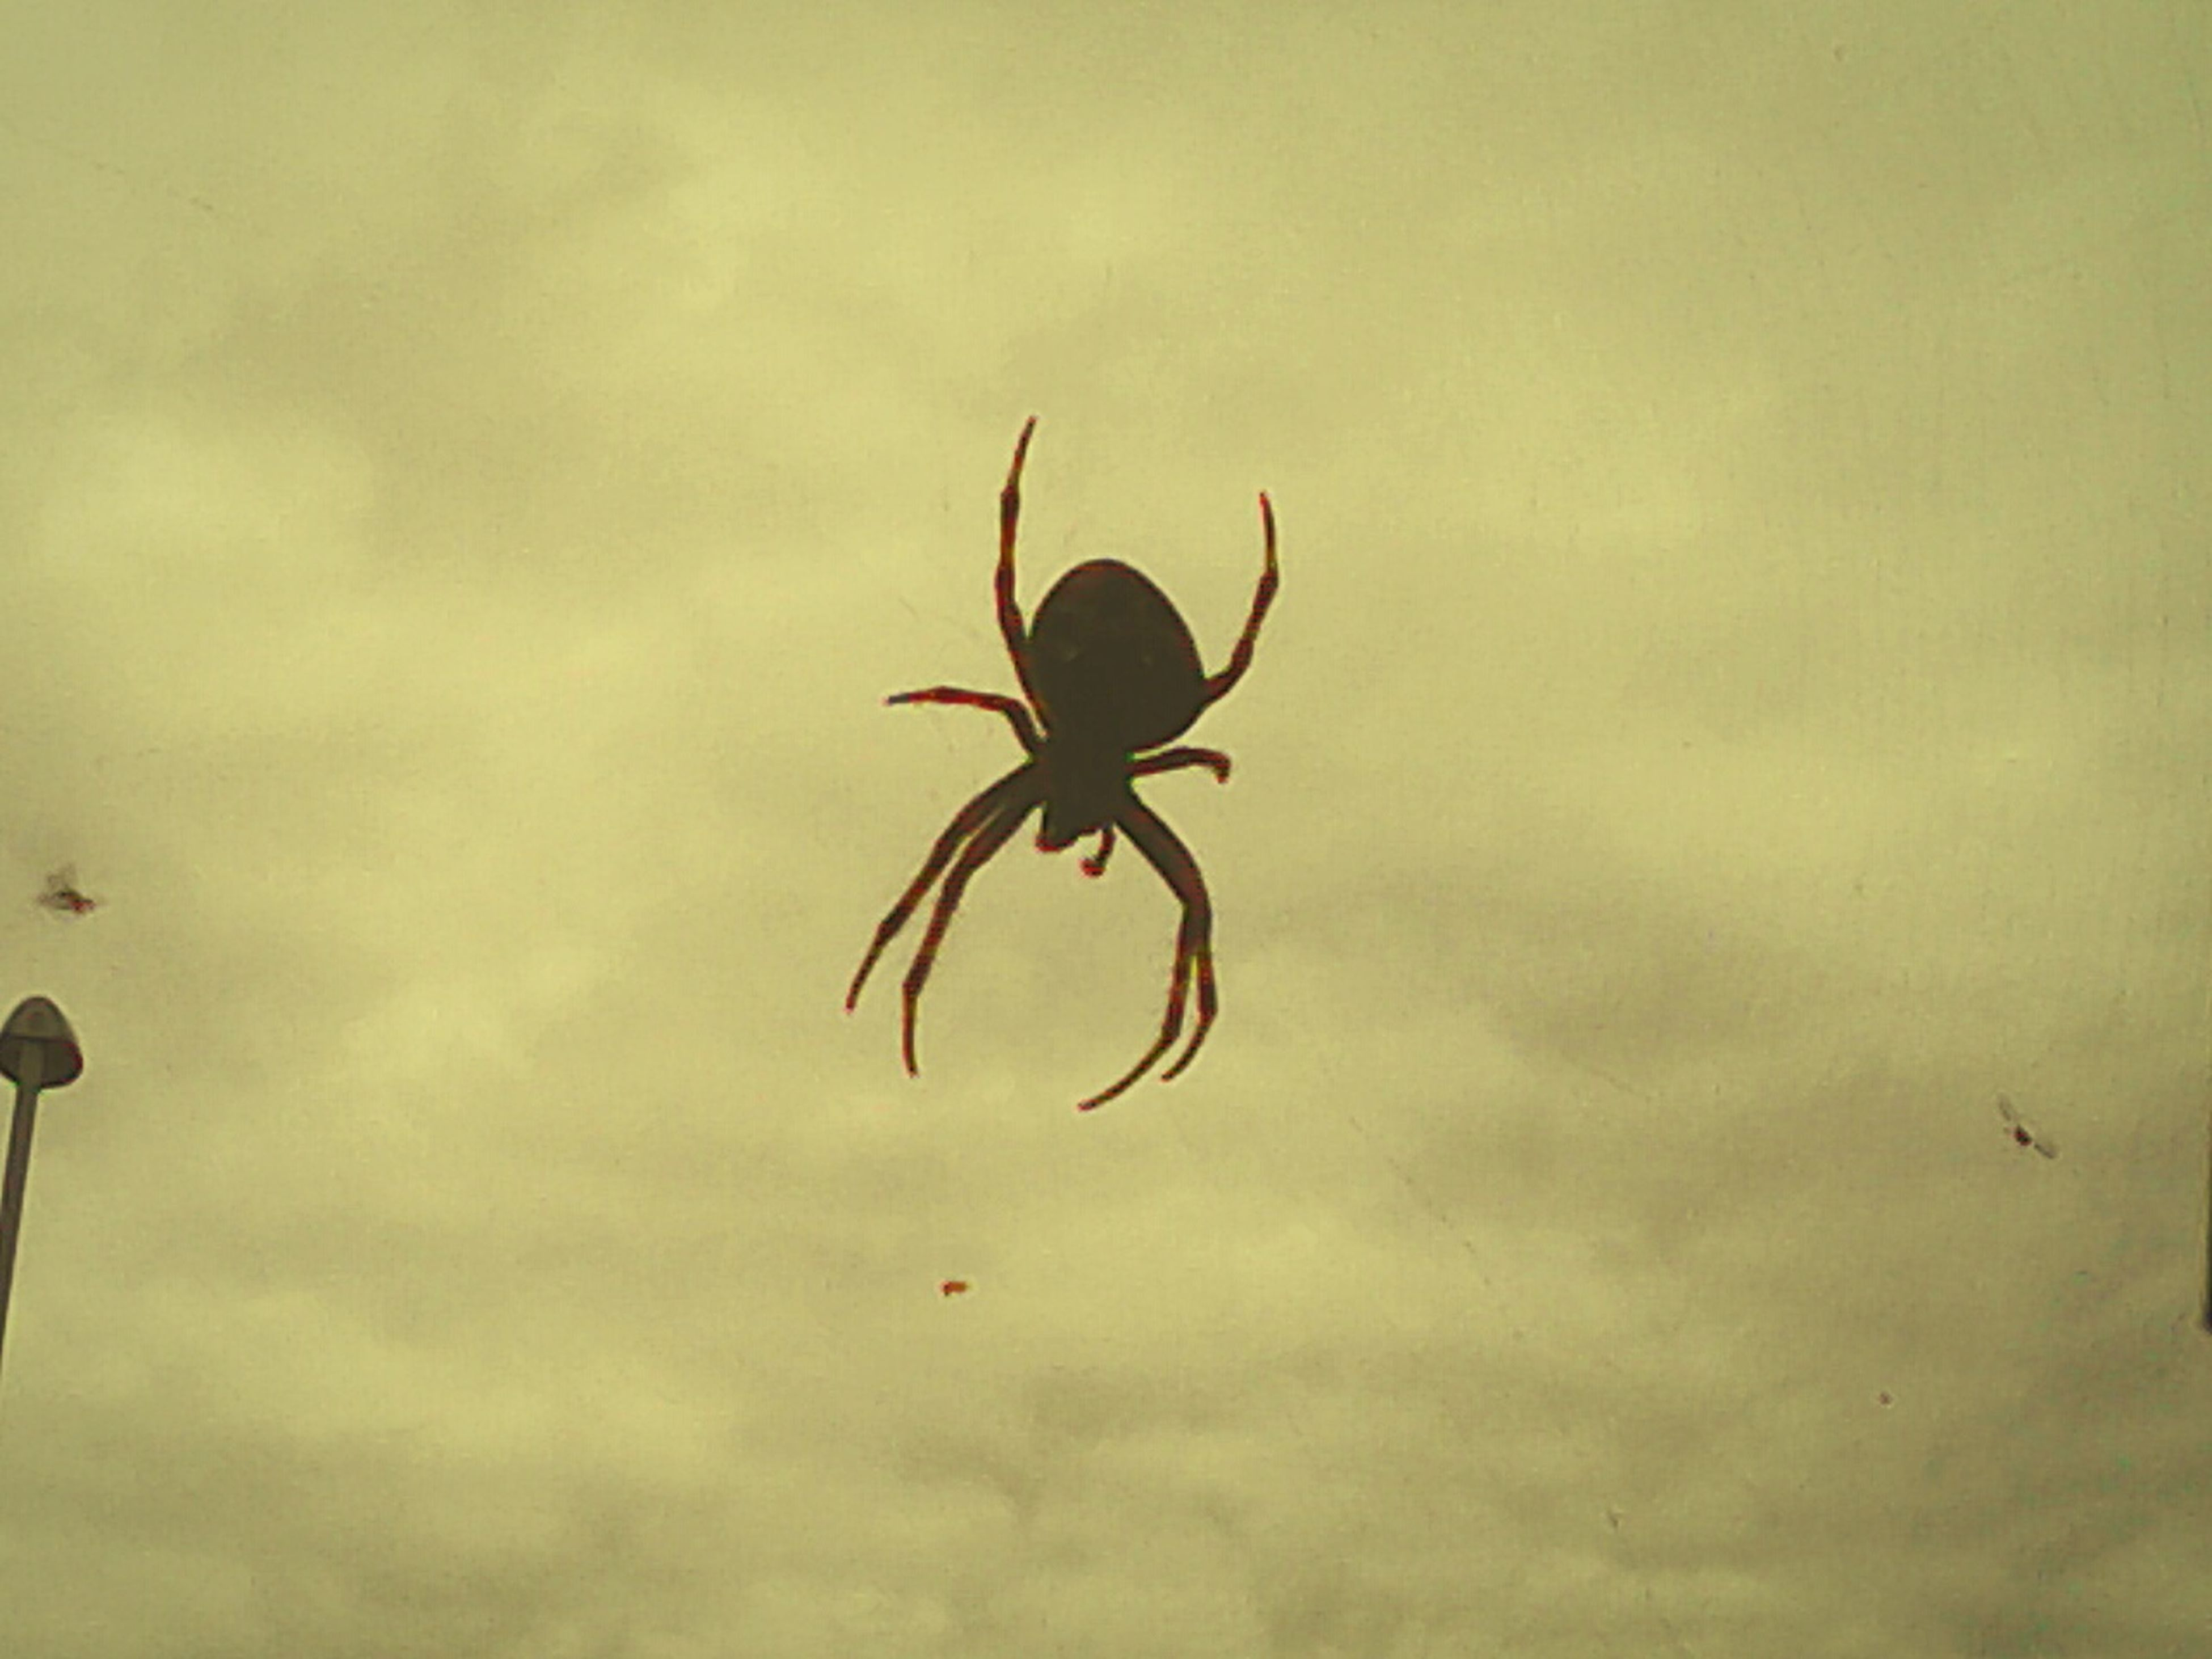 animal themes, insect, animals in the wild, one animal, spider, wildlife, low angle view, sky, silhouette, spider web, nature, close-up, indoors, full length, no people, focus on foreground, day, cloud - sky, mid-air